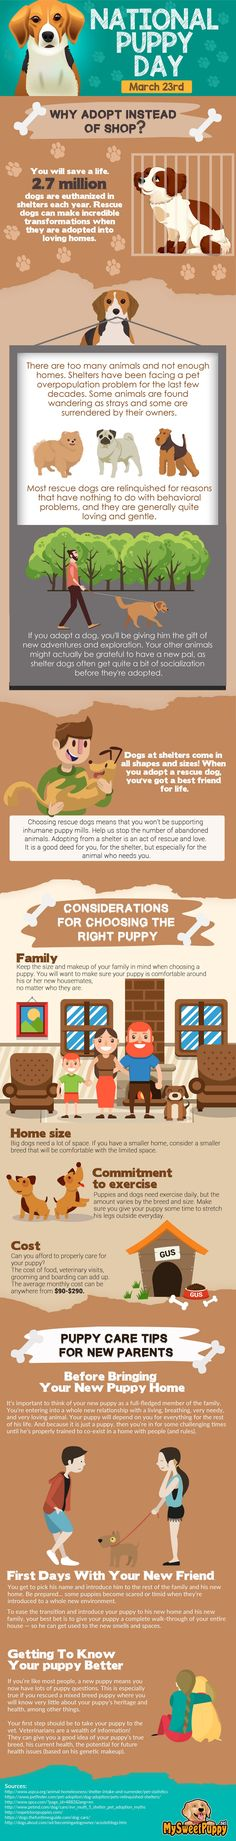 National Puppy Day Is Here, Let's Celebrate!  Come and visit us today for more great information...Opt To Adopt is always a great thing!